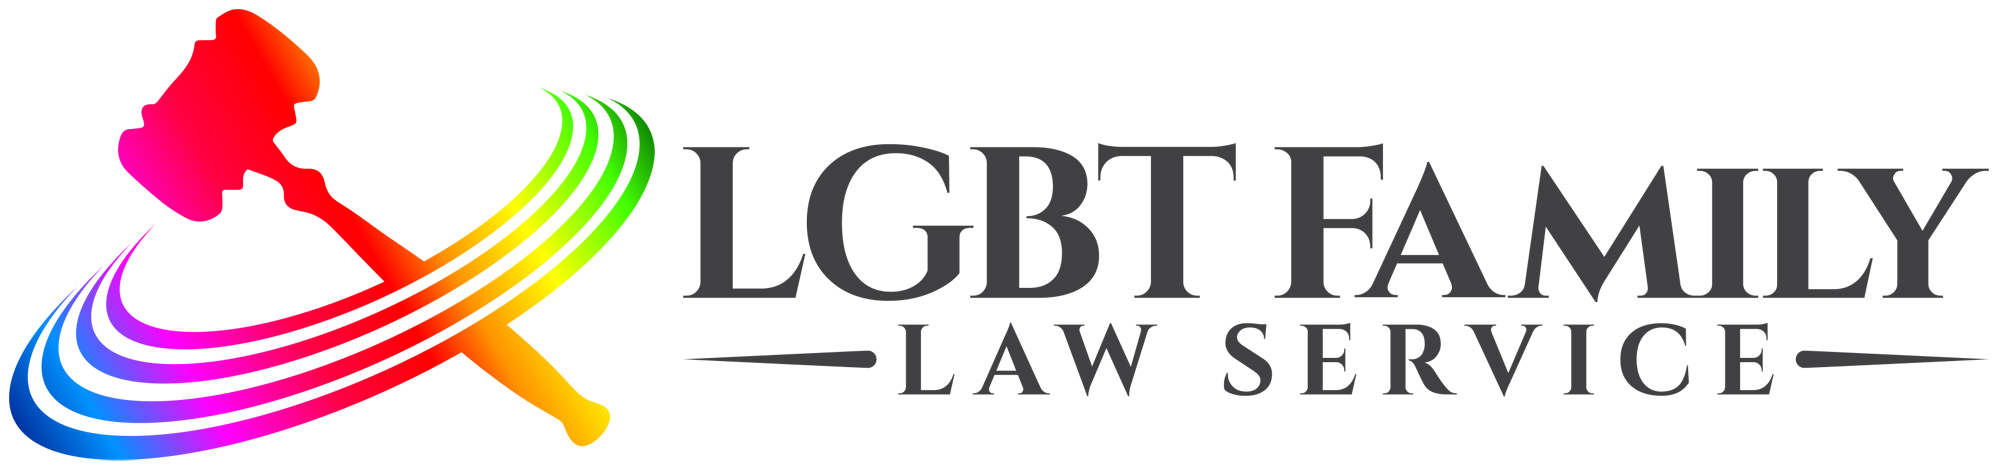 LGBT Family Law Service